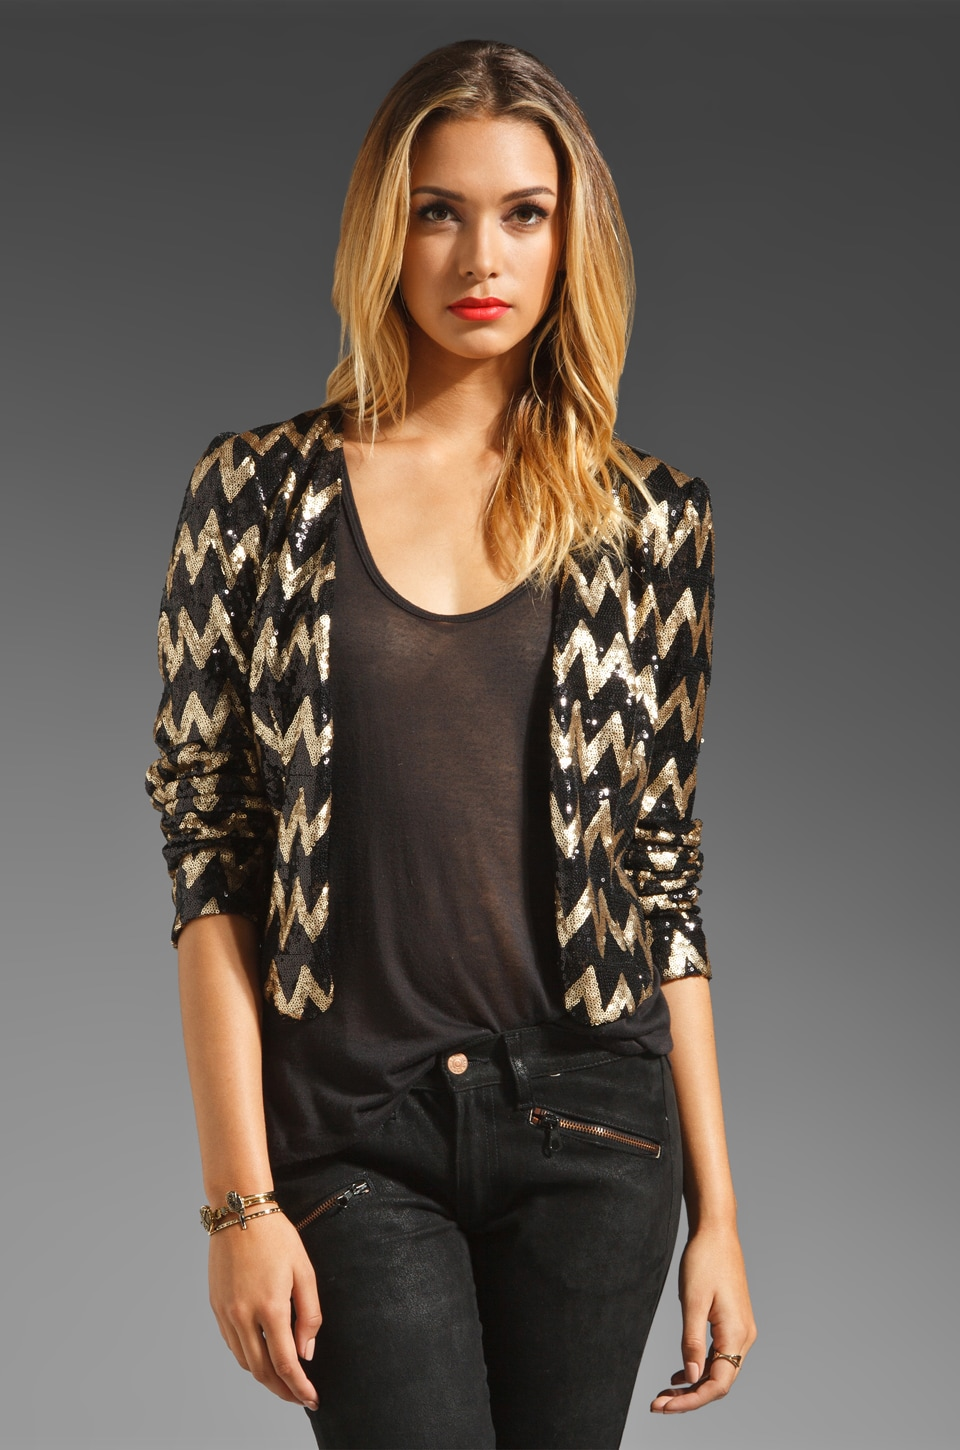 Ladakh For Keeps Zig Zag Sequin Jacket in Black/Gold